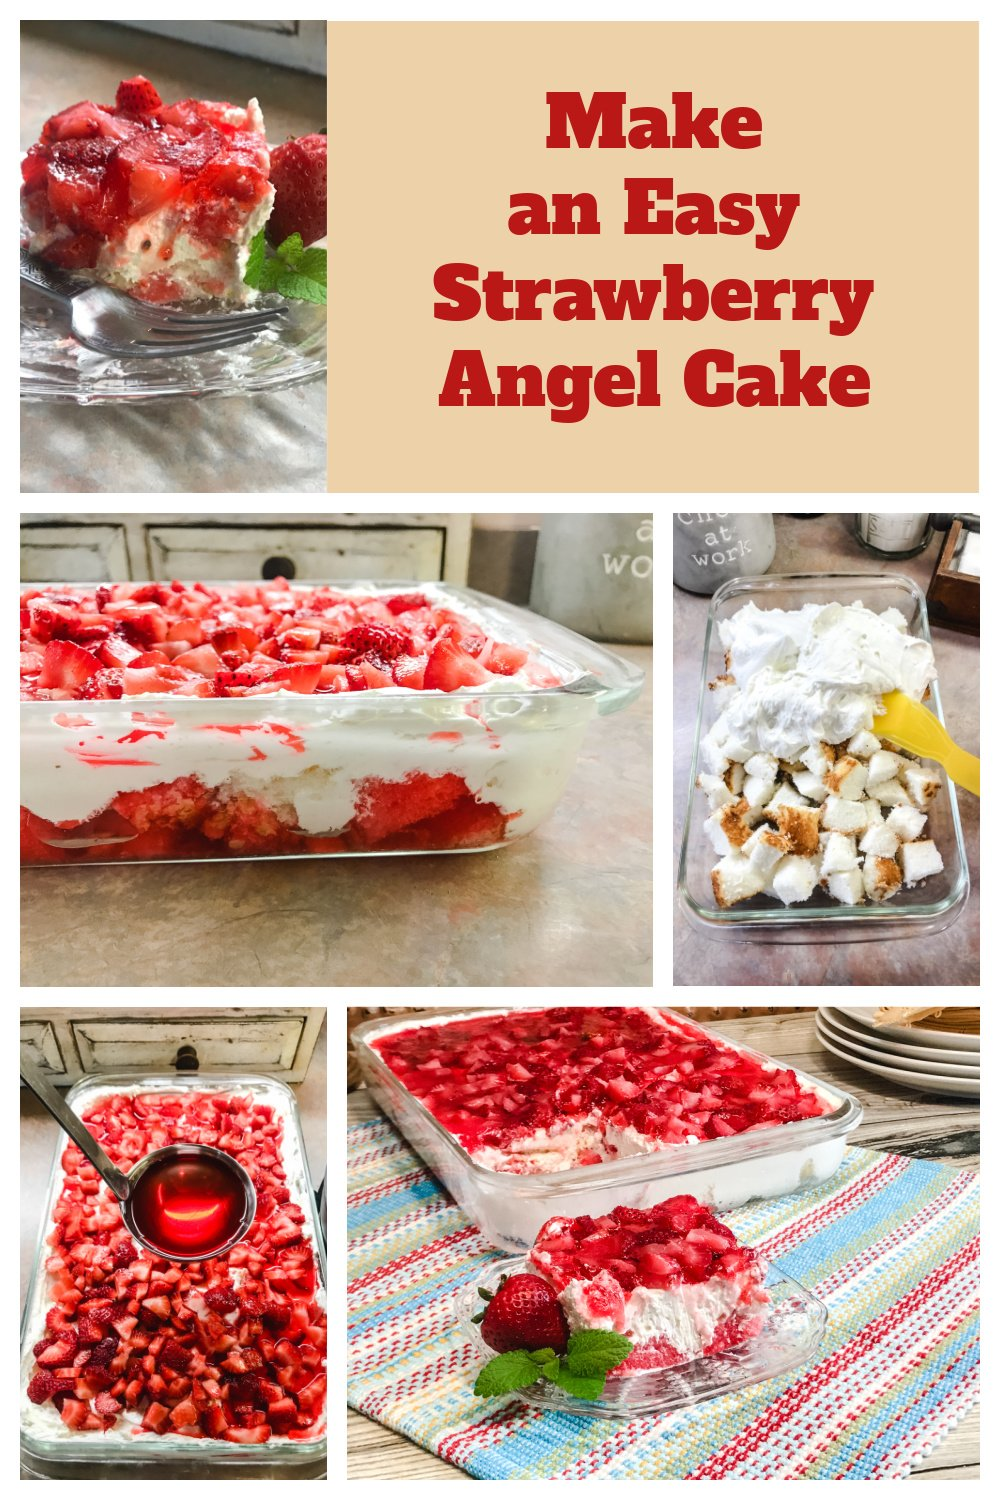 The easy steps to making Strawberry Angel Dessert.